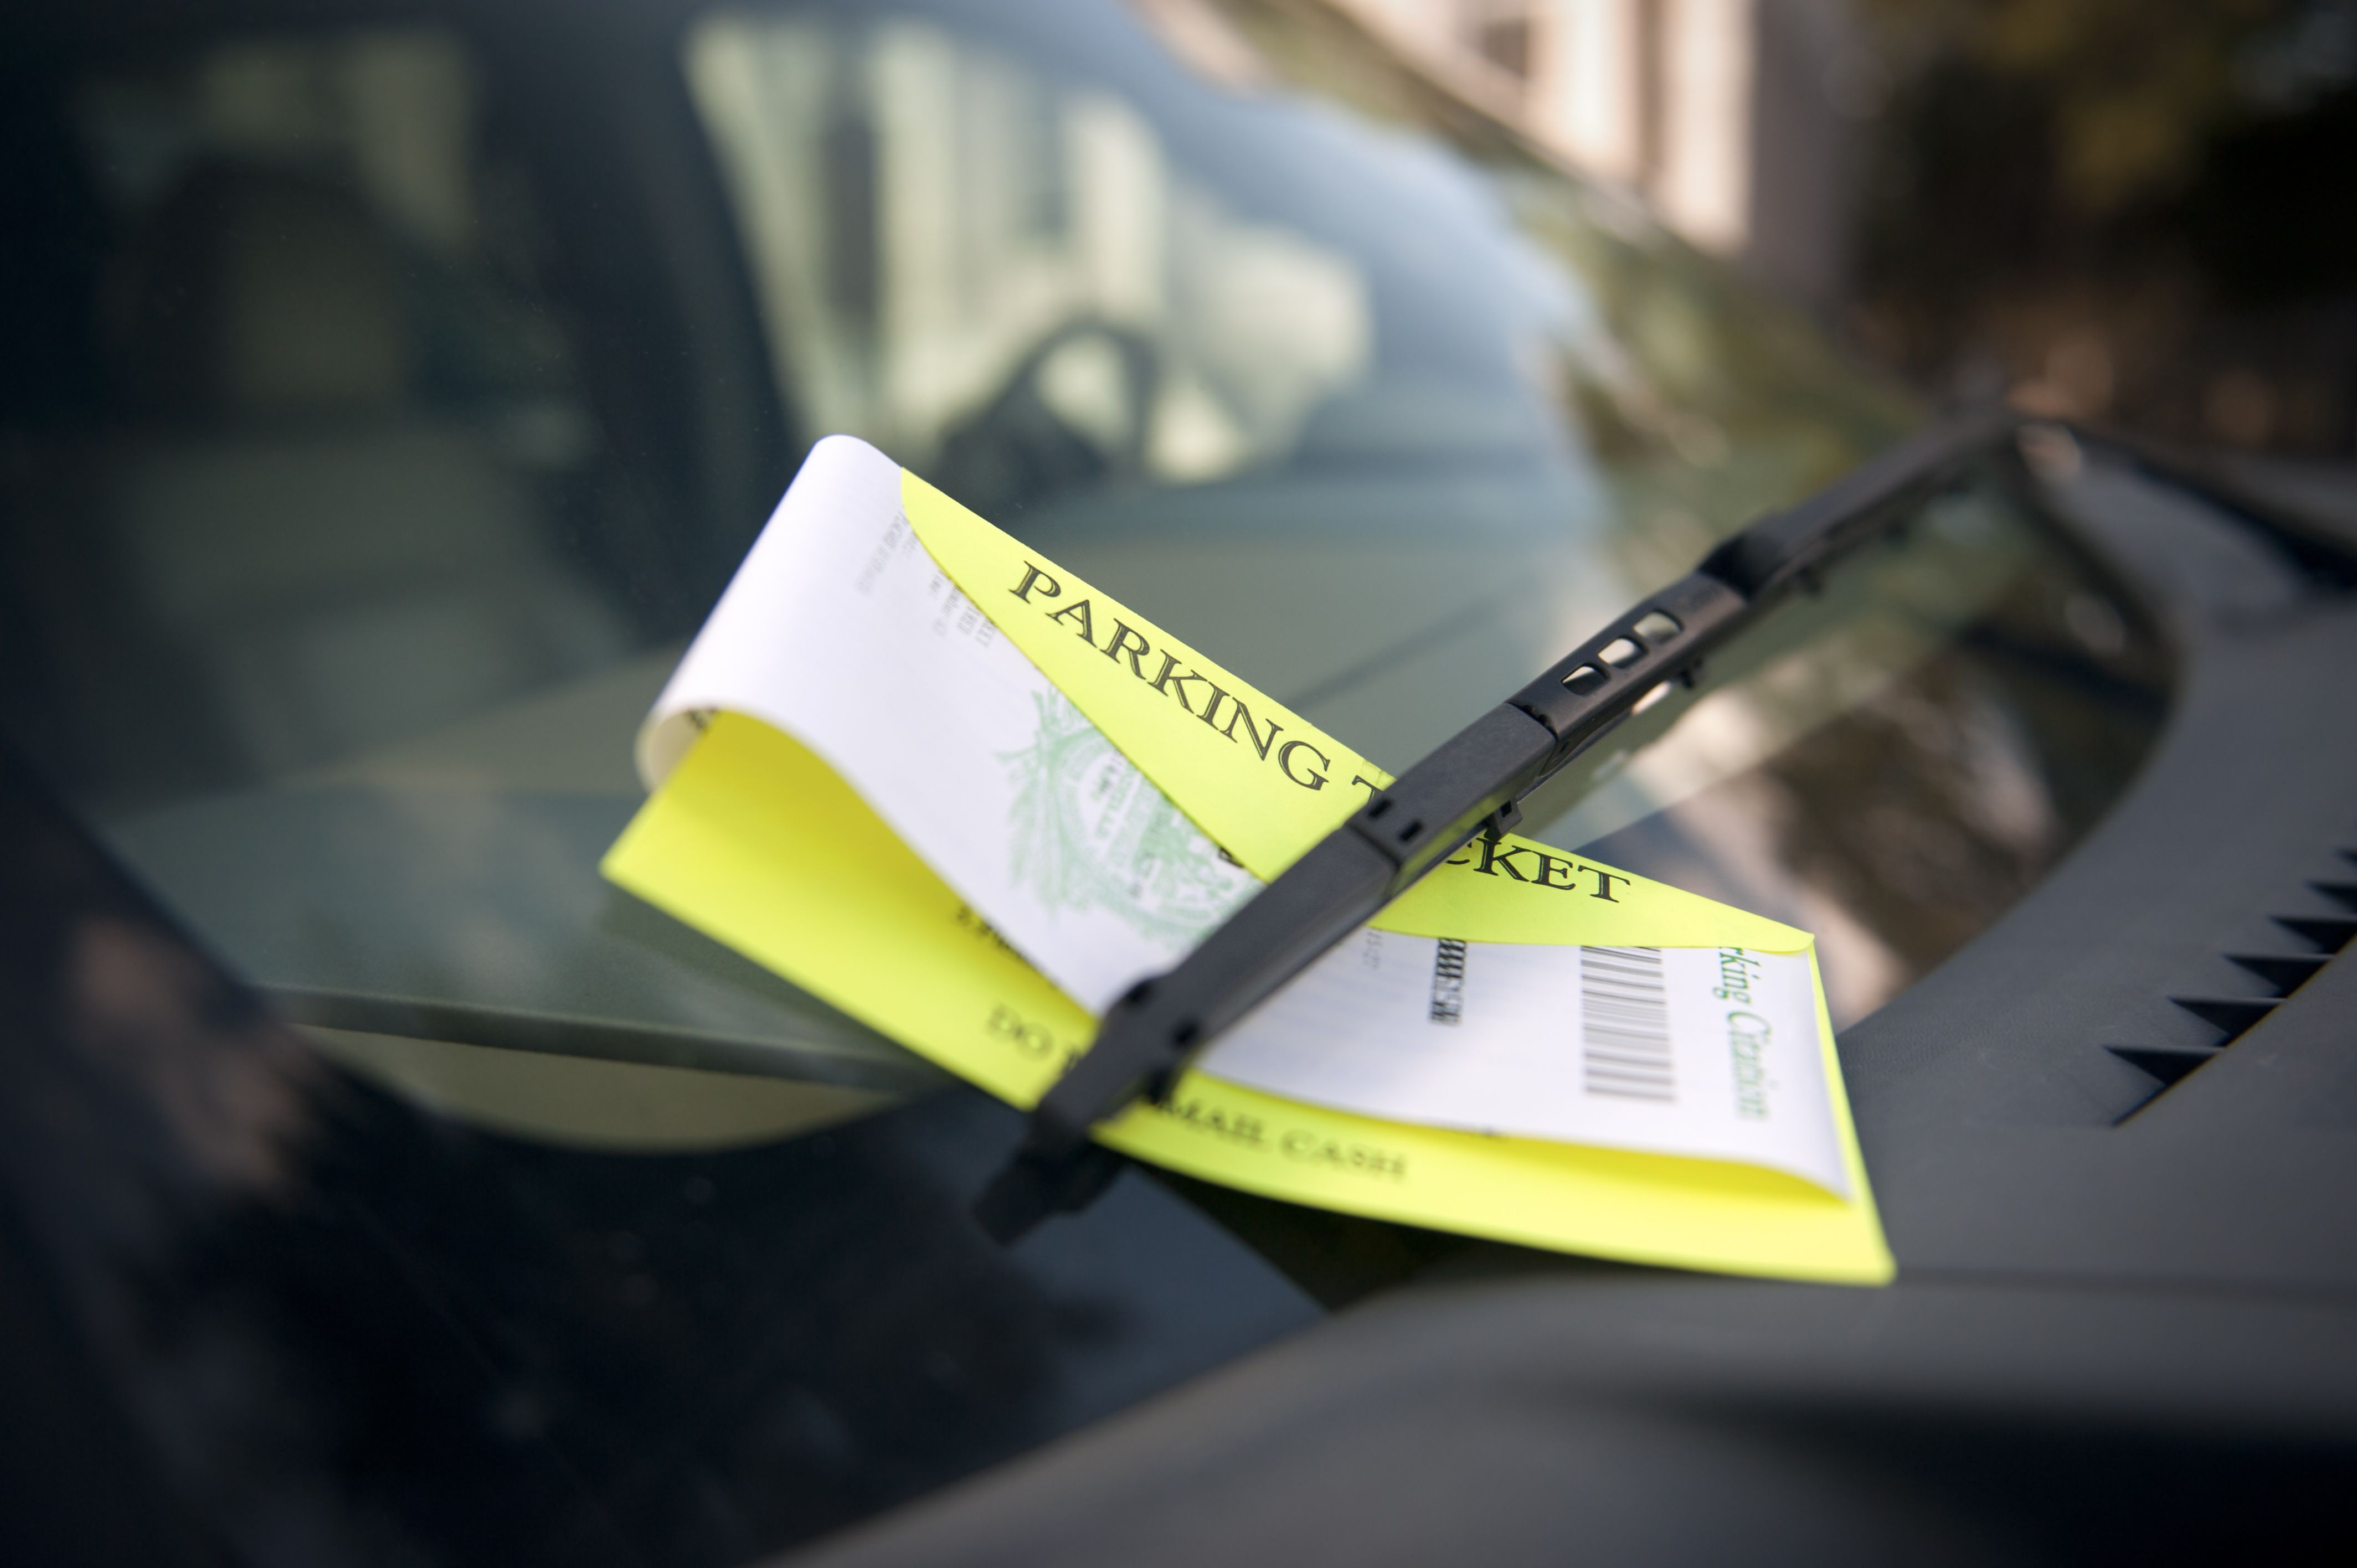 find your ticket by drivers license